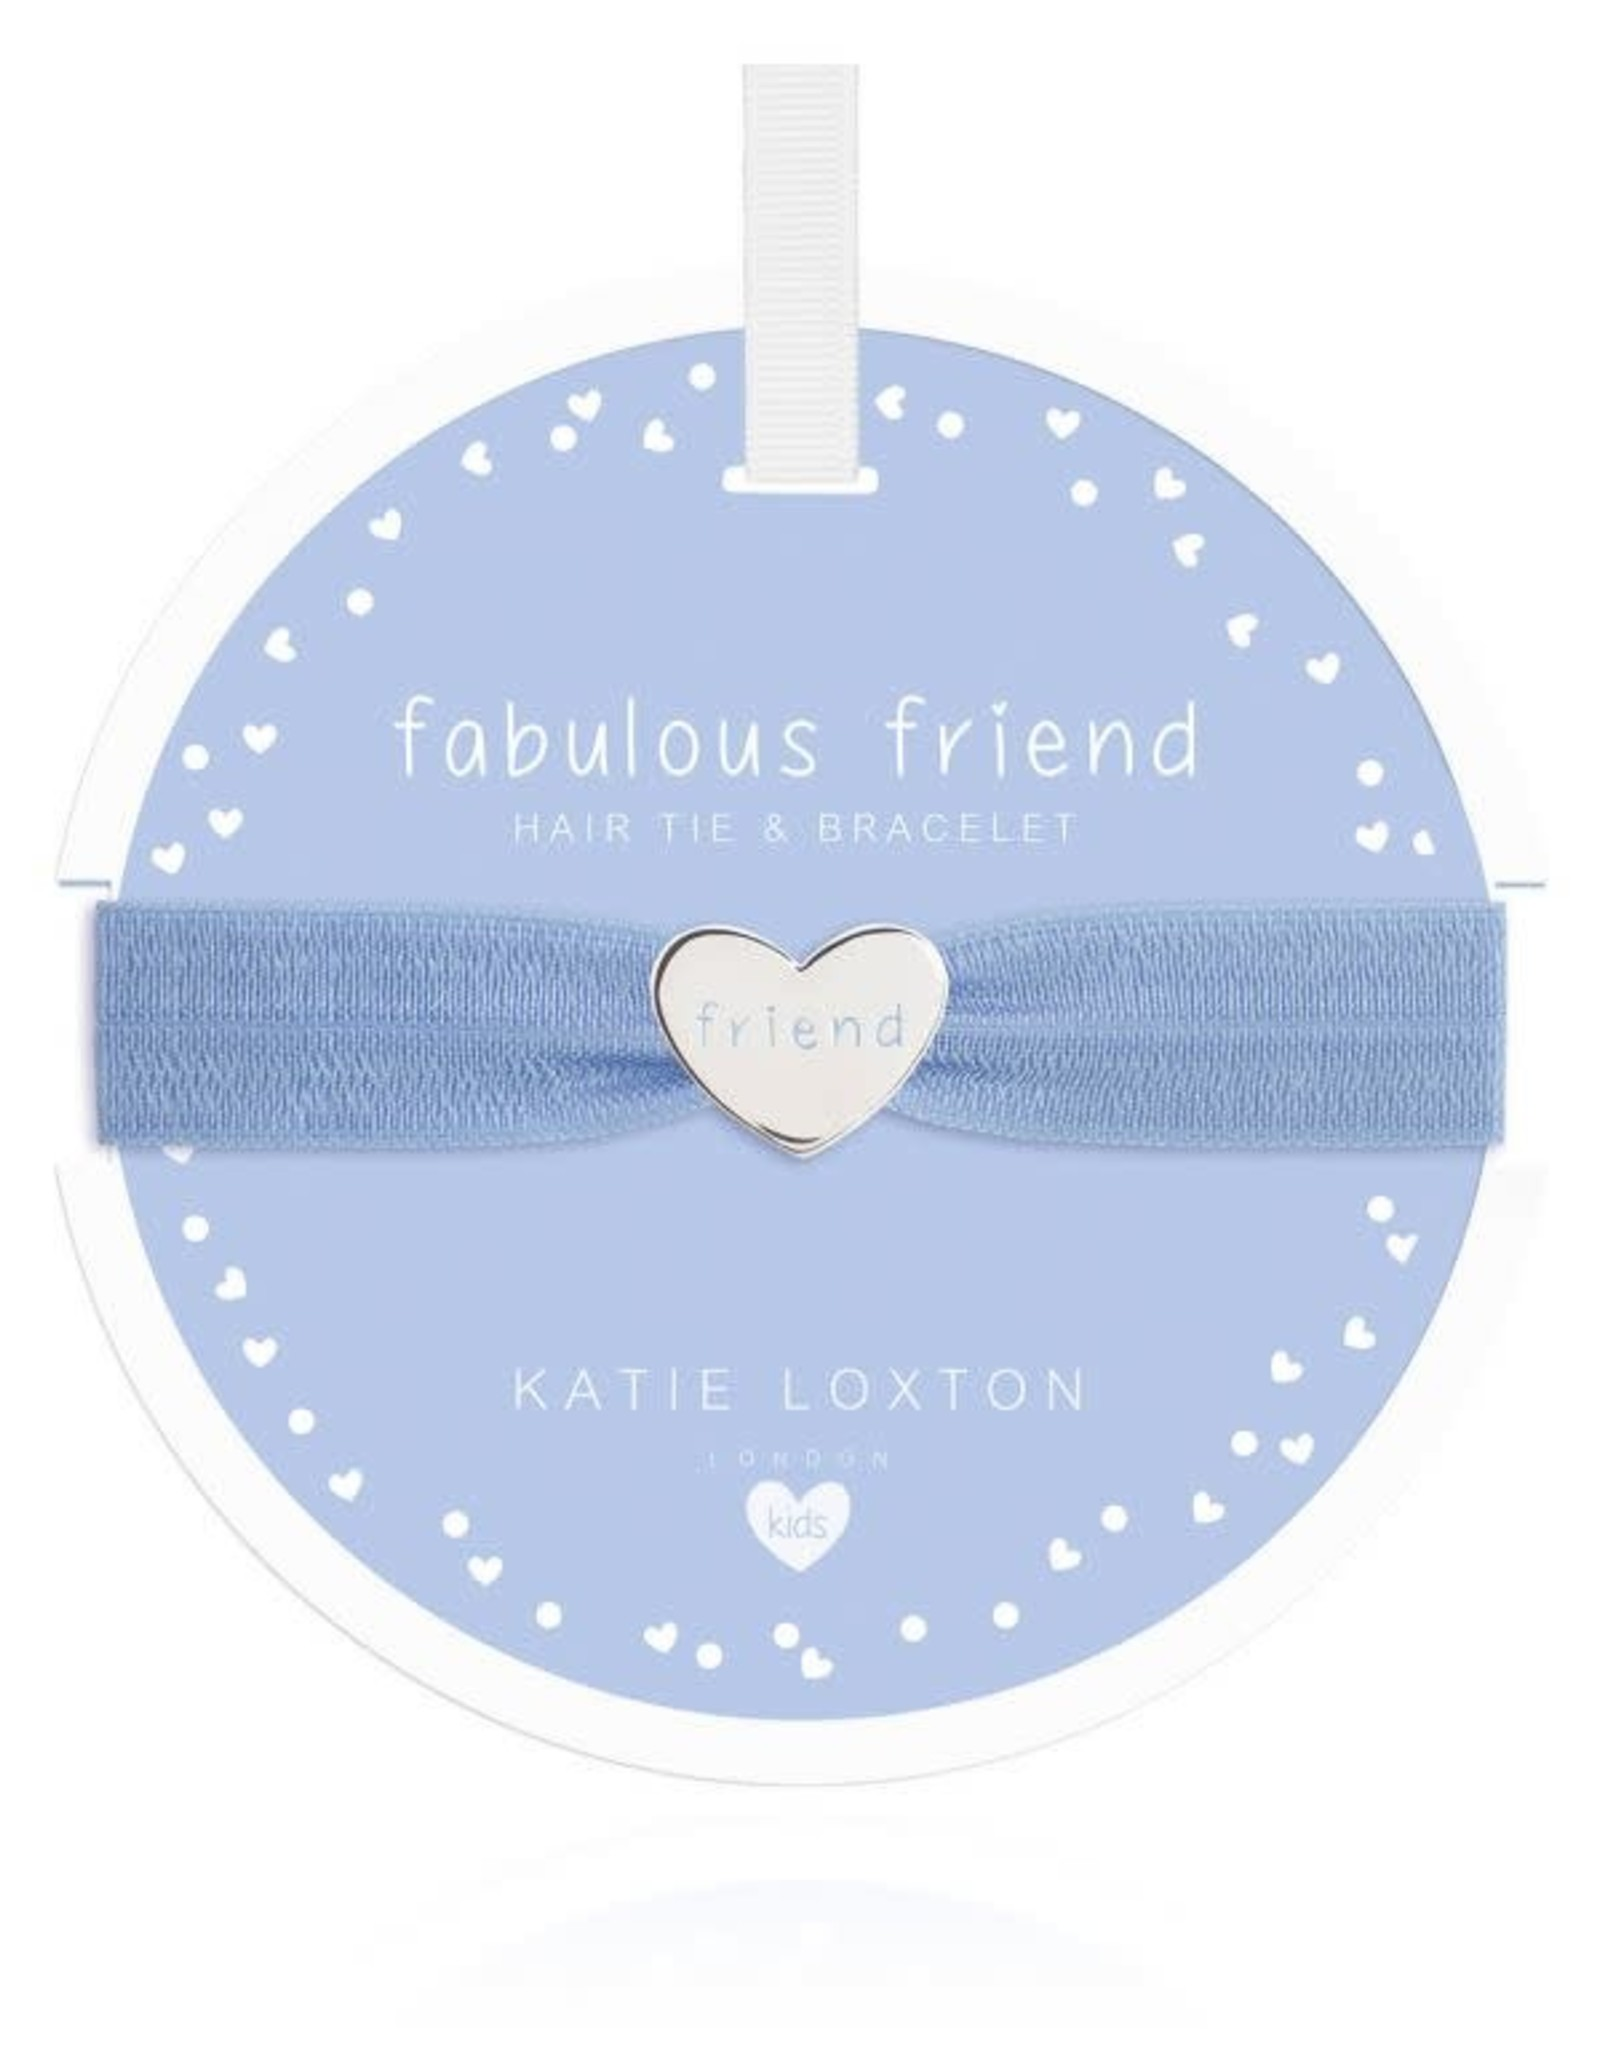 Katie Loxton Children's Hair Tie Bracelet Fabulous Friend Heart Blue